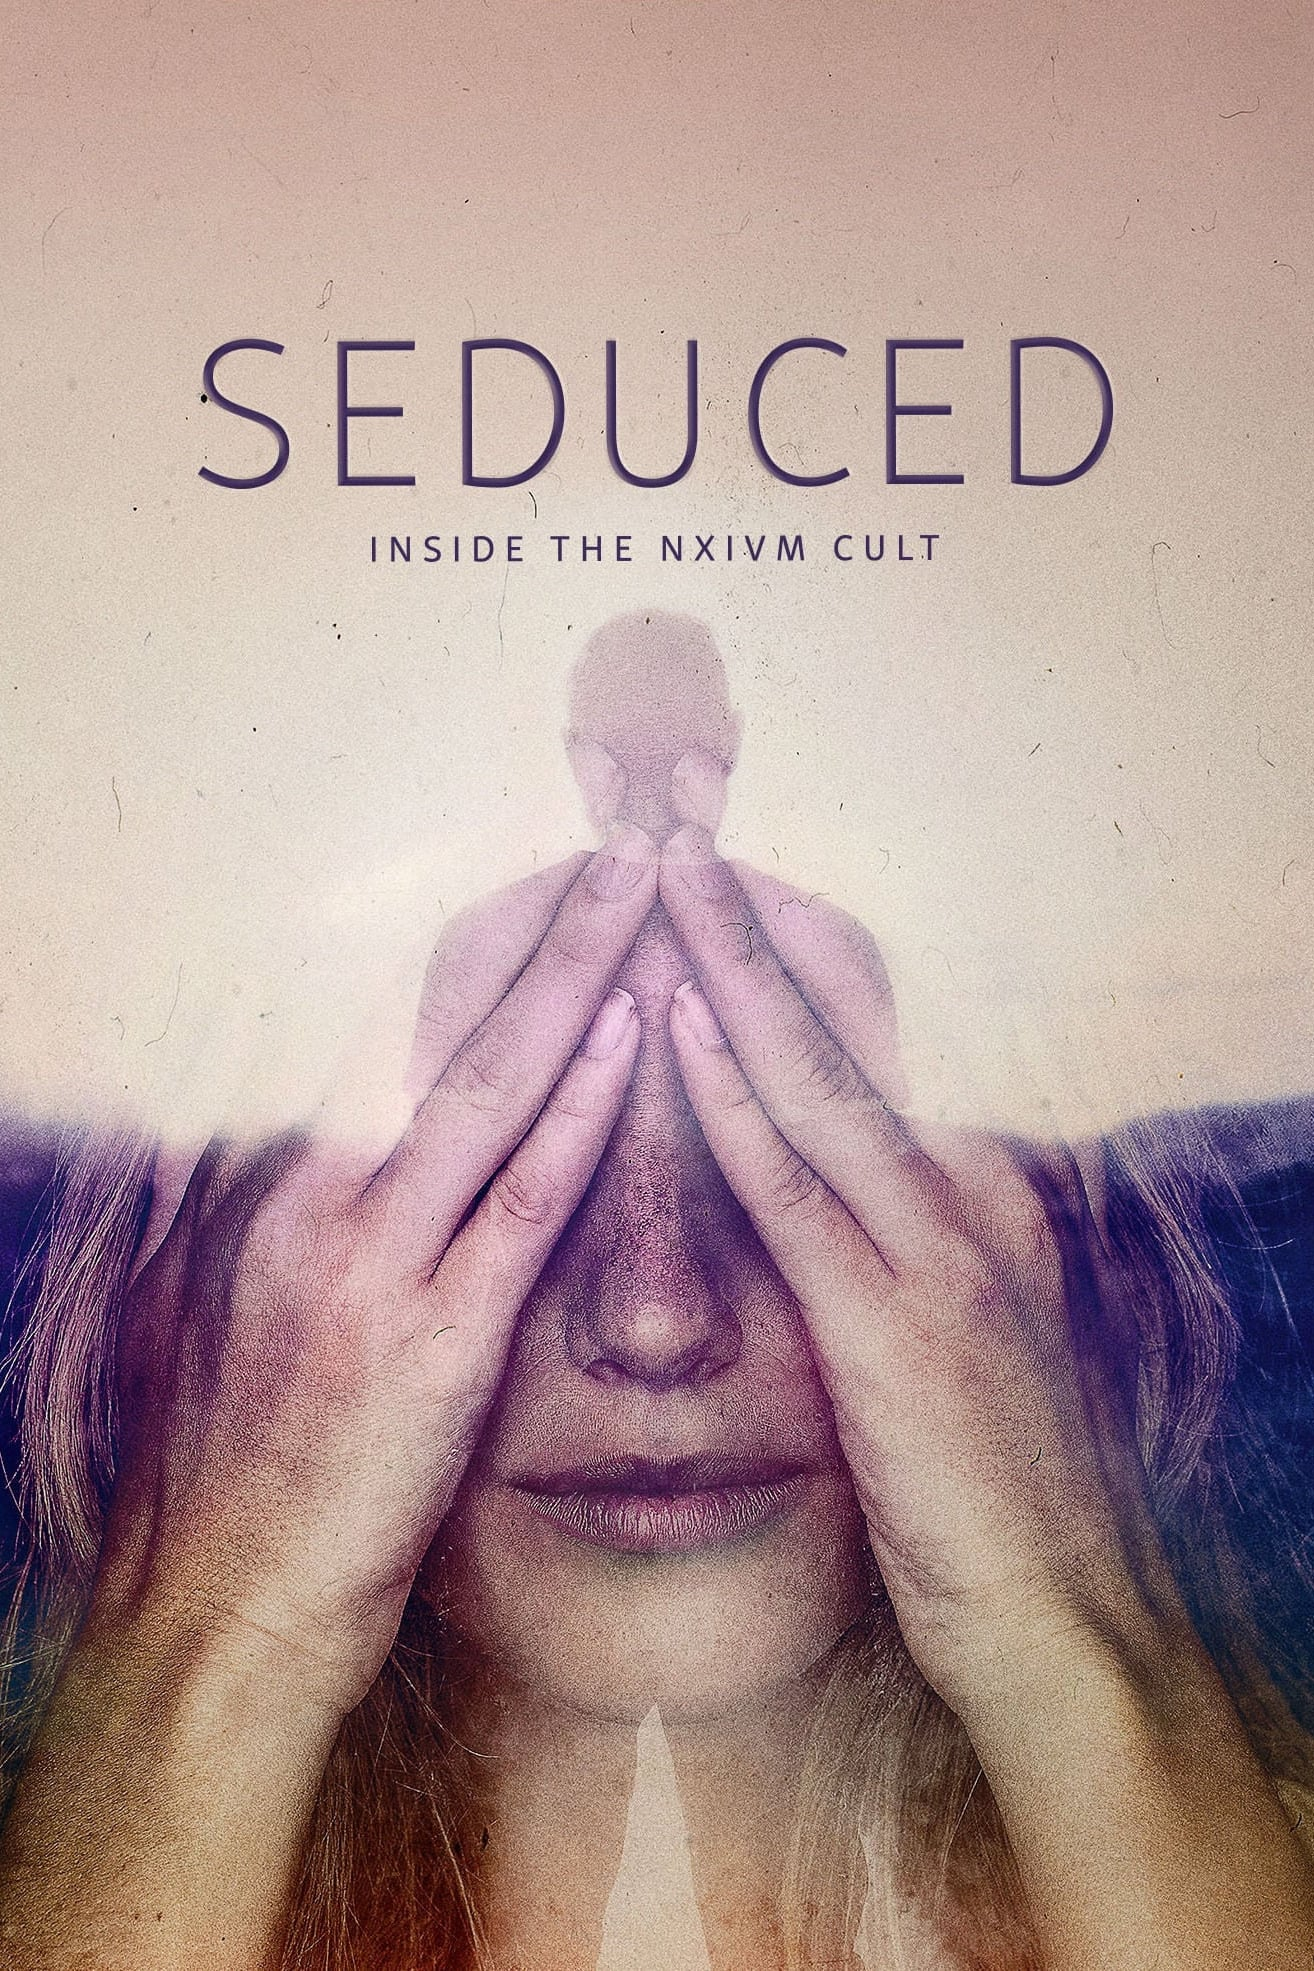 Seduced: Inside the NXIVM Cult TV Shows About Miniseries